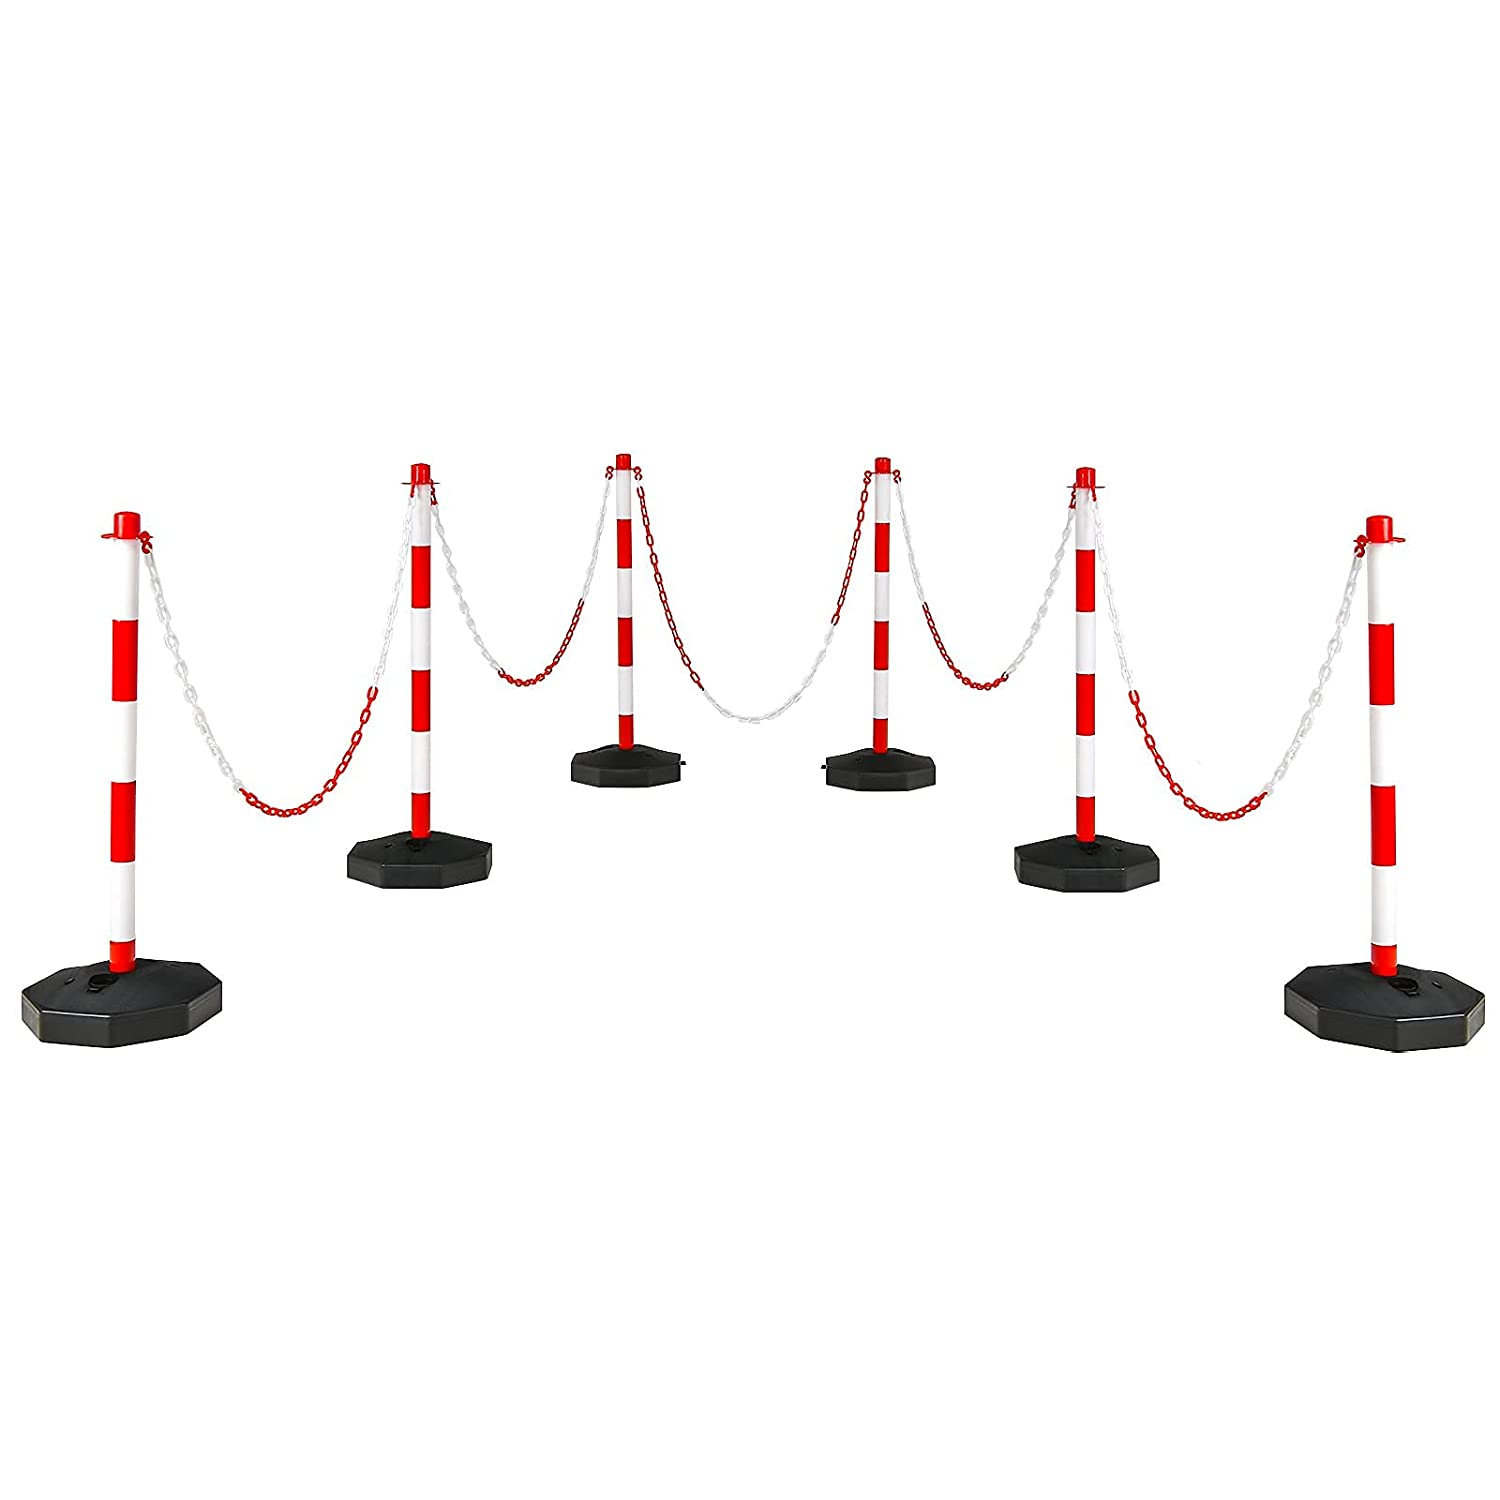 Goplus 6 Pack Delineator Post Cone Safety Cones Barrier Traffic OFFicial mail order Cheap sale